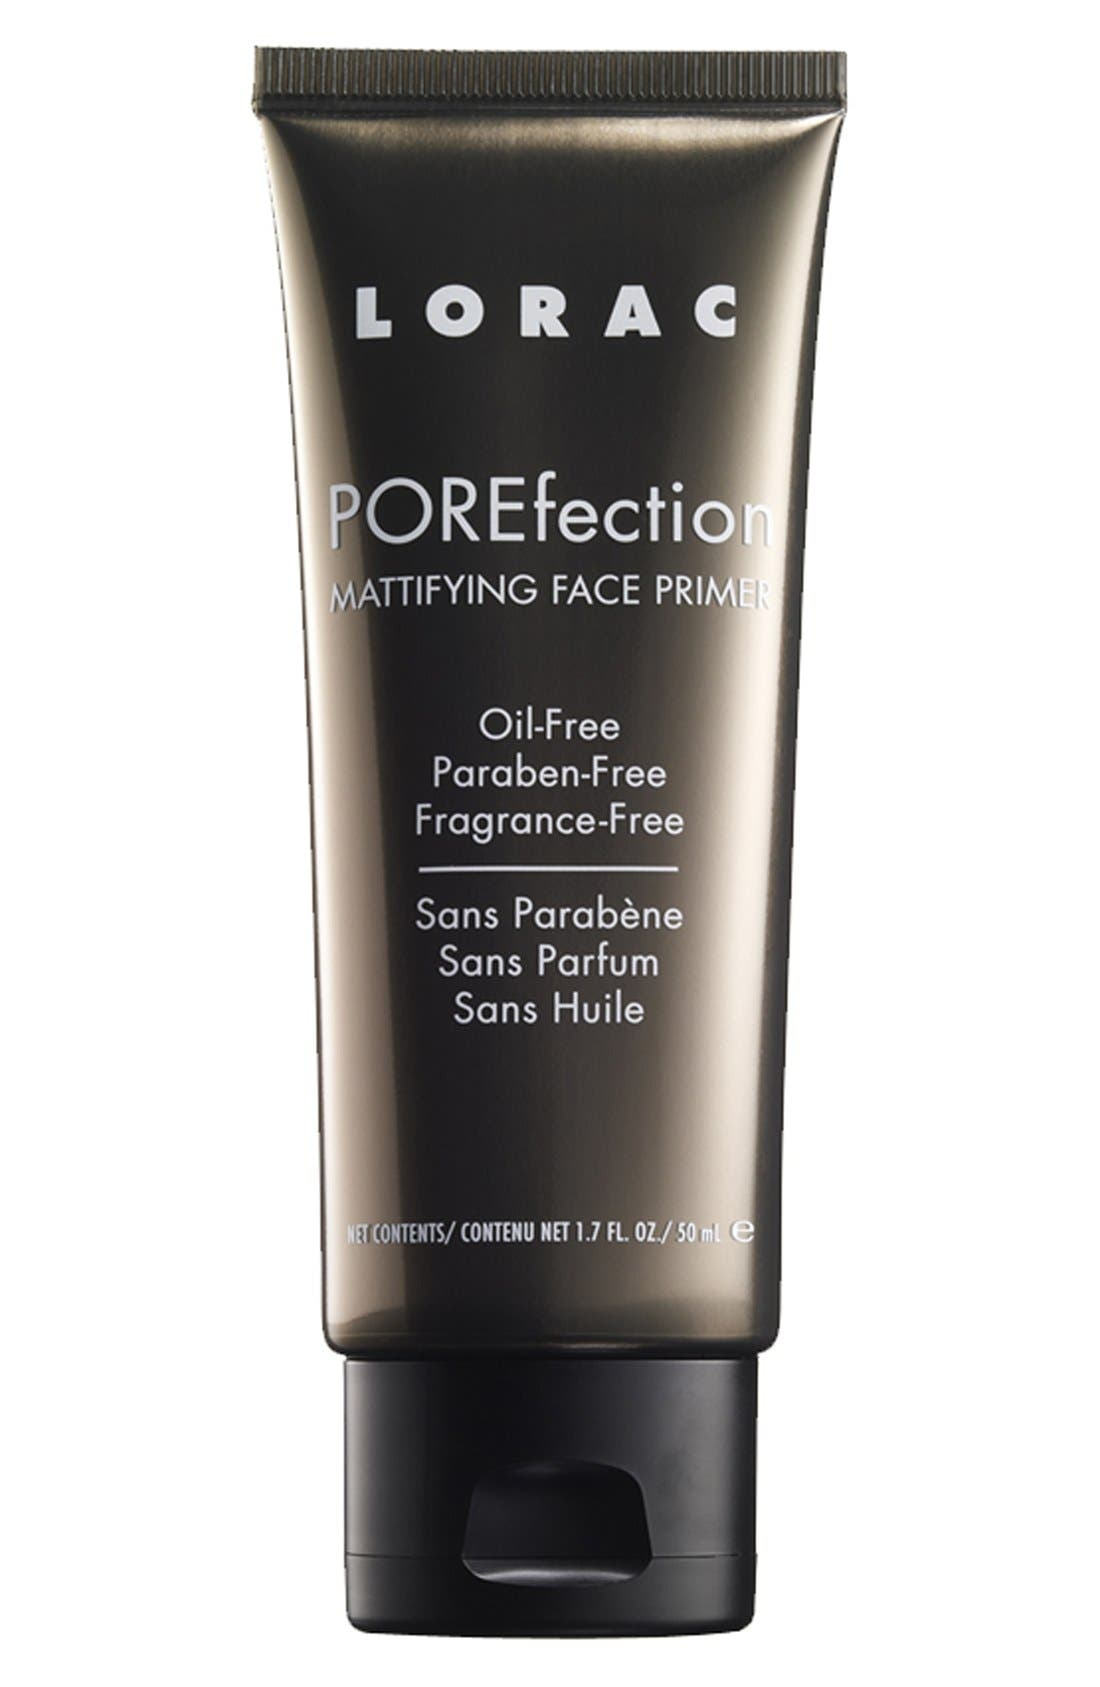 LORAC 'POREfection®' Mattifying Face Primer